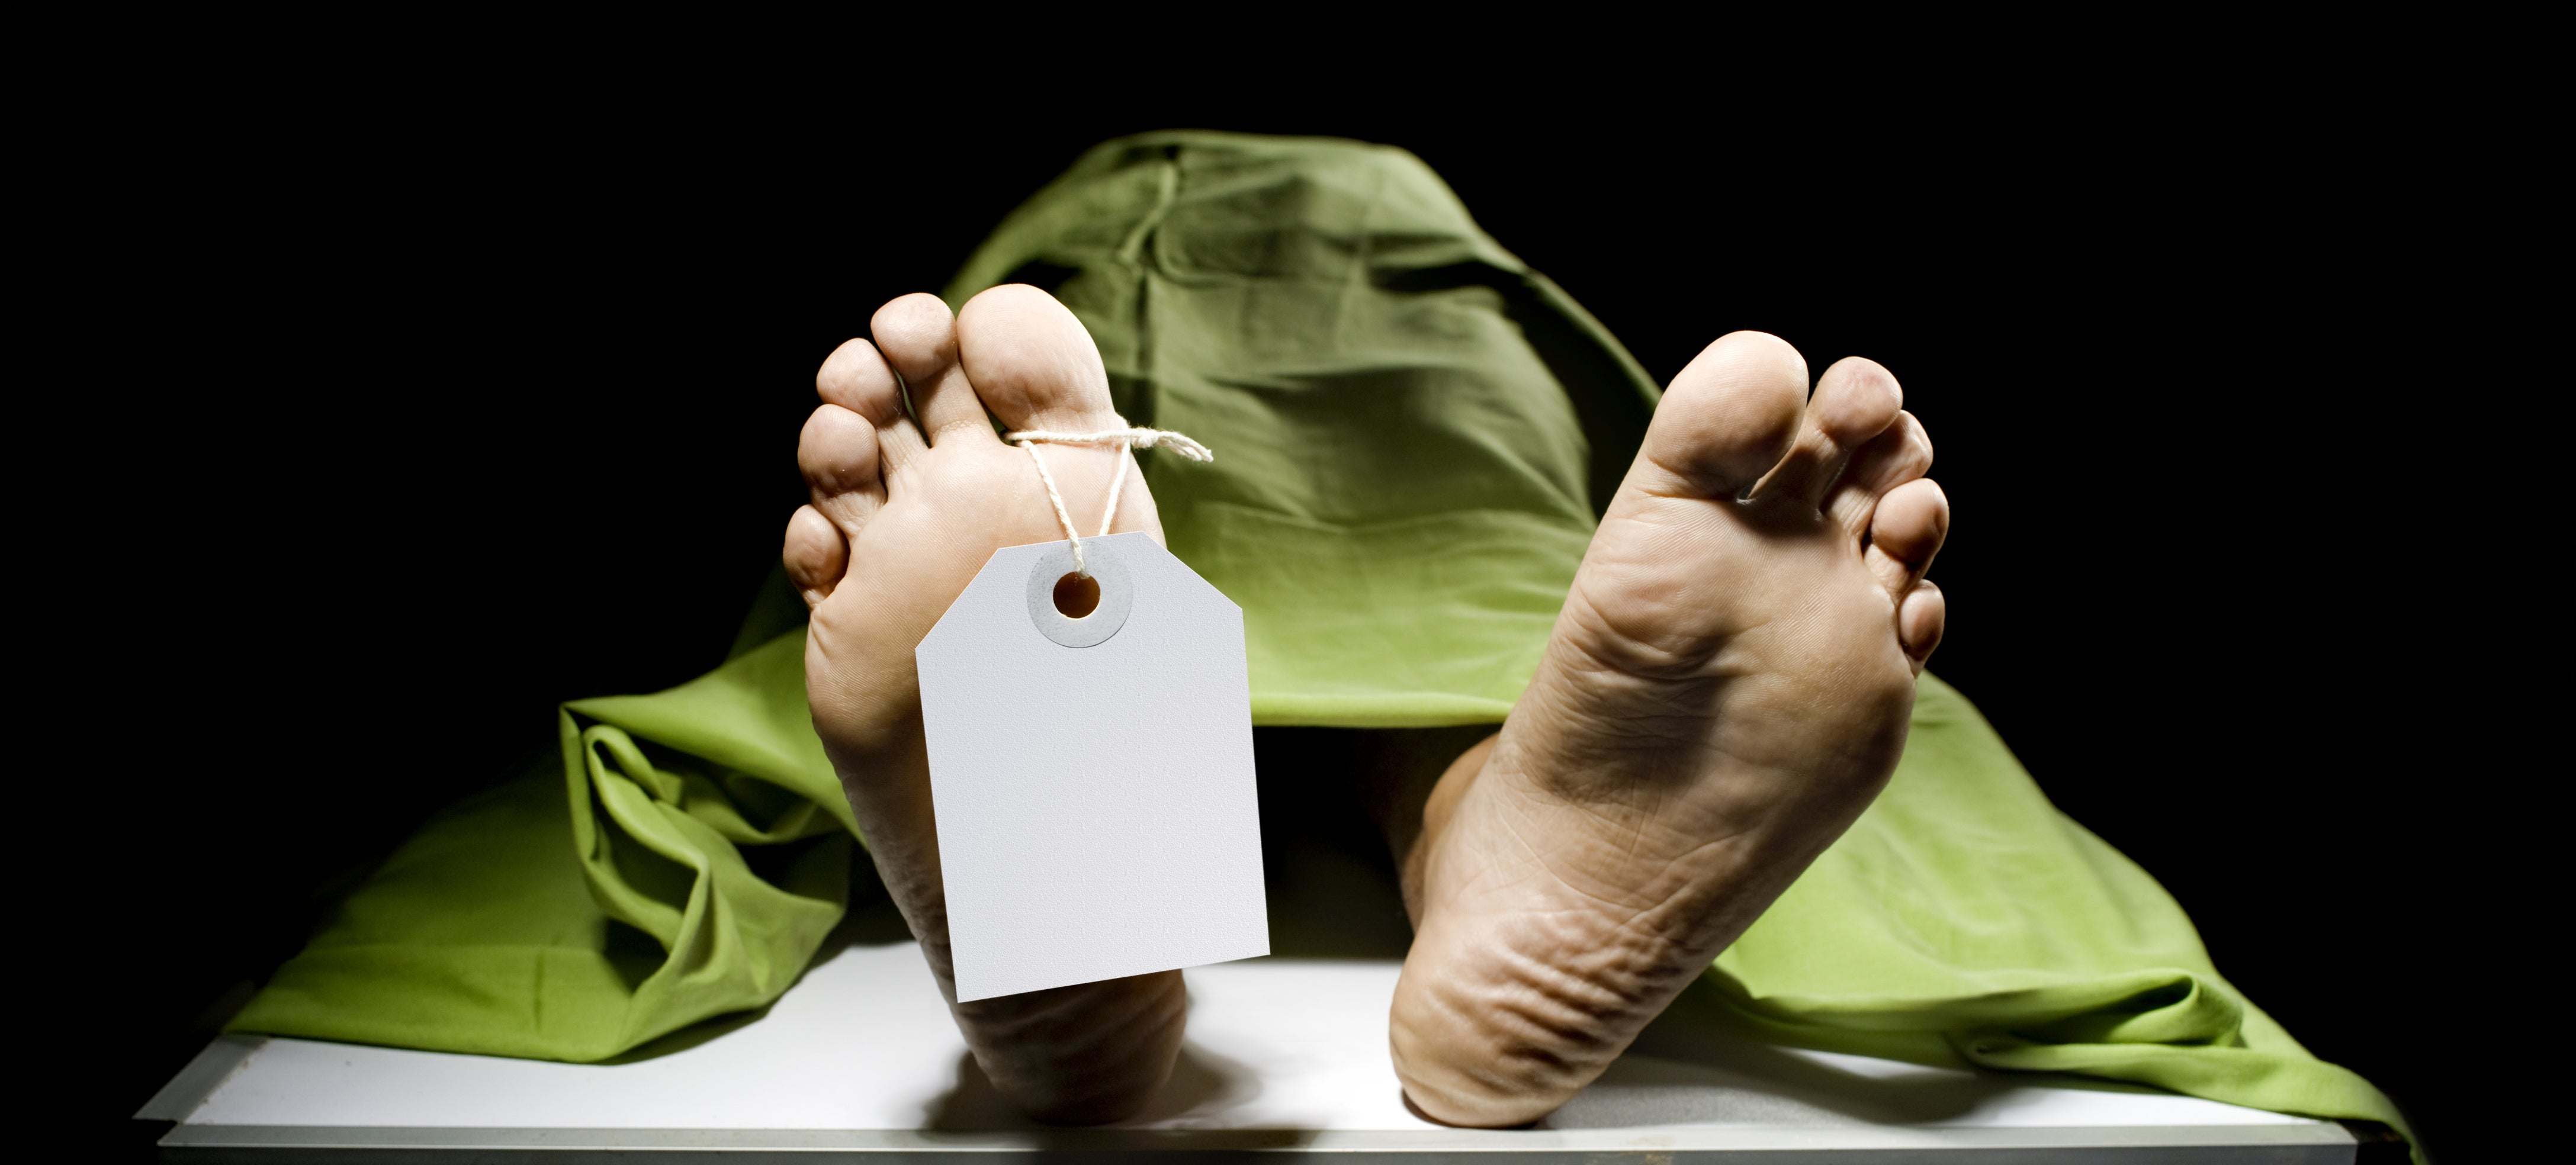 What Gives a Decaying Body Its Distinctive Odor?